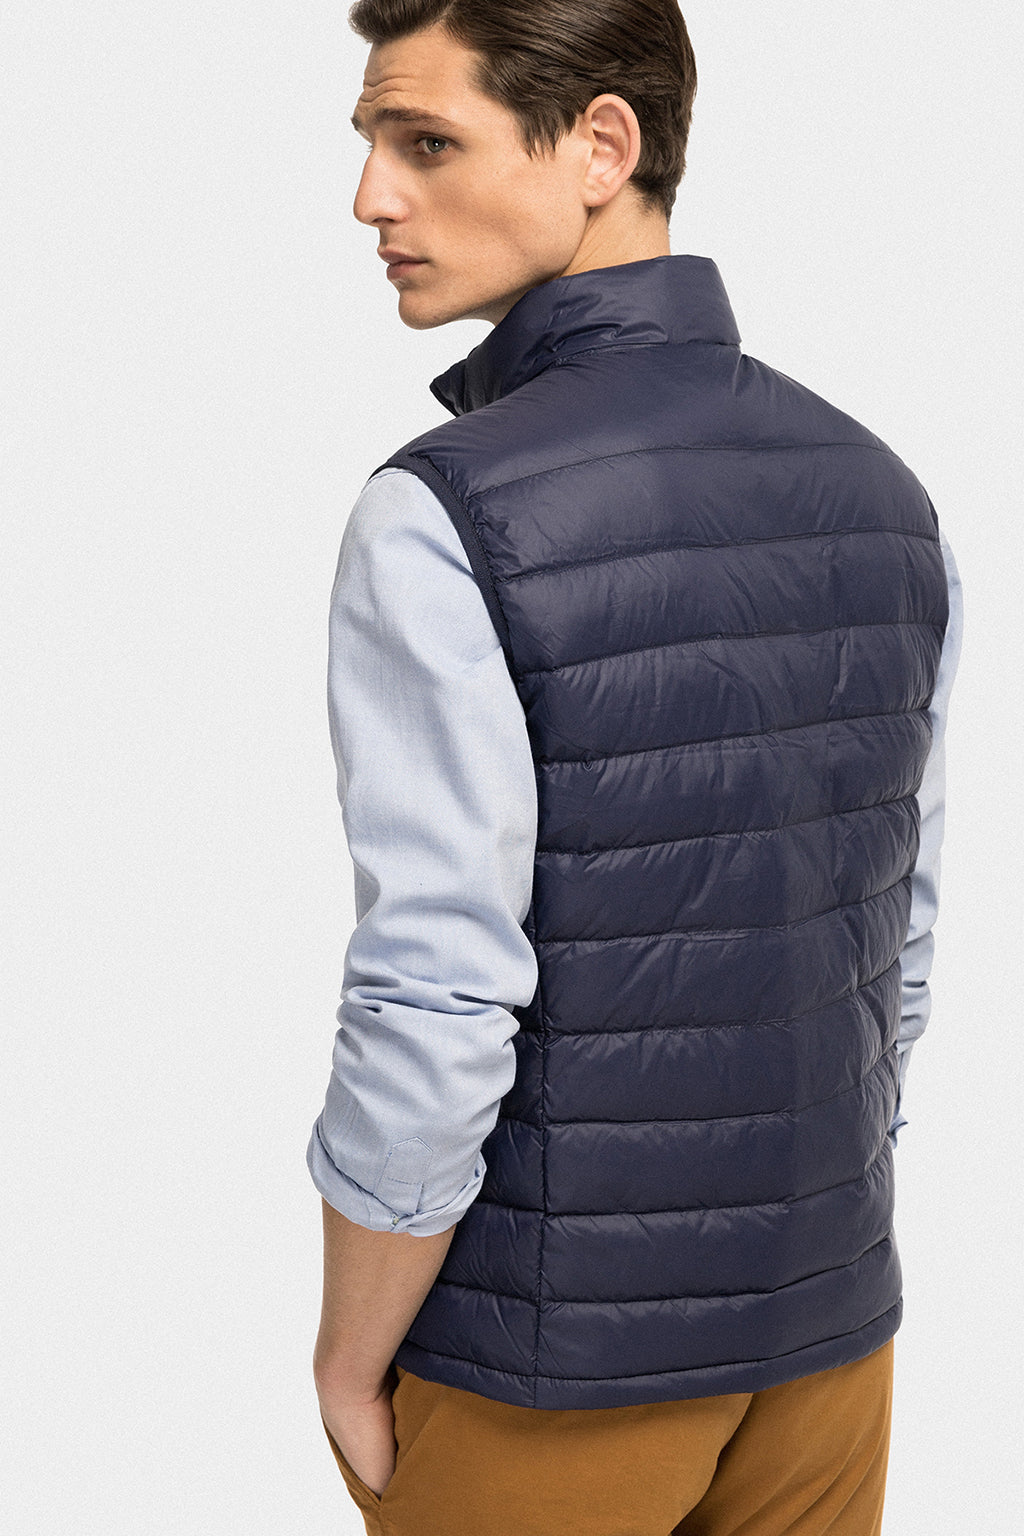 Navy blue ultralight vest